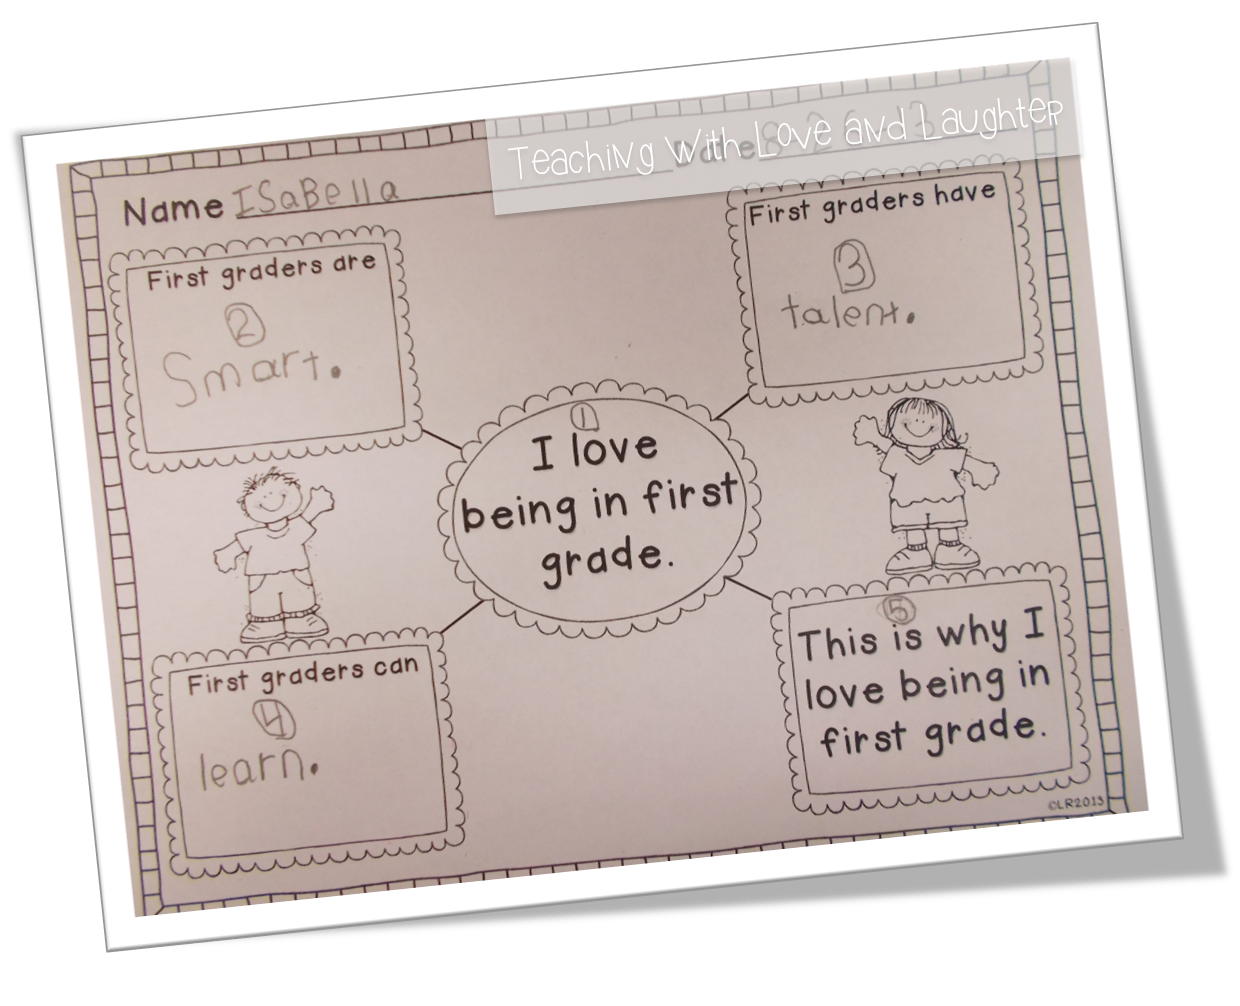 Worksheet Writing Activities For First Grade teaching with love and laughter kindergarten first grade writing this activity is part of my back to school language activities for graders